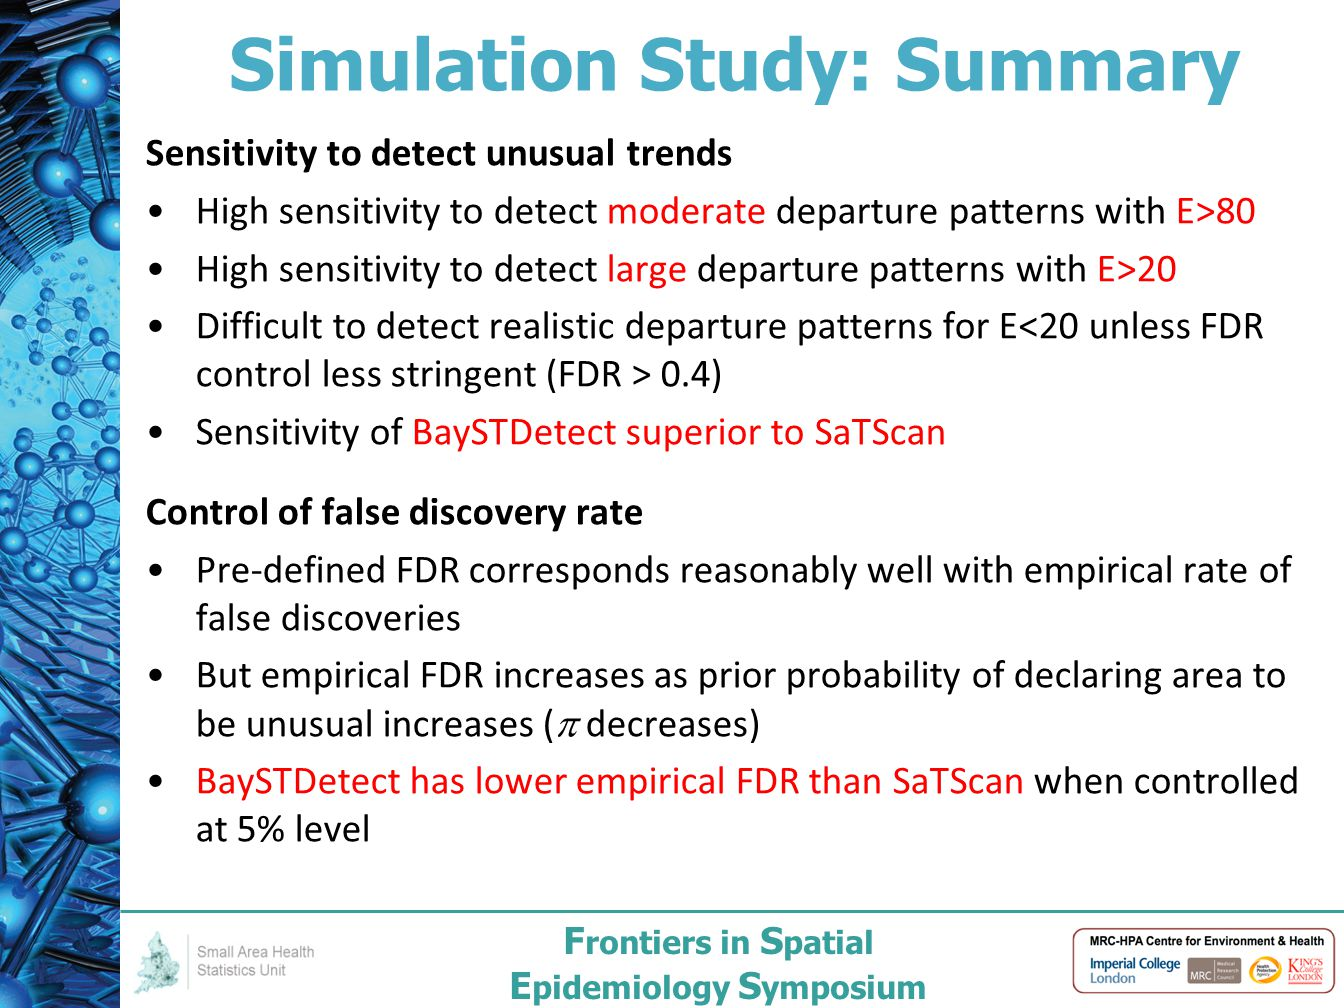 F rontiers in S patial E pidemiology S ymposium Simulation Study: Summary Sensitivity to detect unusual trends High sensitivity to detect moderate departure patterns with E>80 High sensitivity to detect large departure patterns with E>20 Difficult to detect realistic departure patterns for E 0.4) Sensitivity of BaySTDetect superior to SaTScan Control of false discovery rate Pre-defined FDR corresponds reasonably well with empirical rate of false discoveries But empirical FDR increases as prior probability of declaring area to be unusual increases (  decreases) BaySTDetect has lower empirical FDR than SaTScan when controlled at 5% level